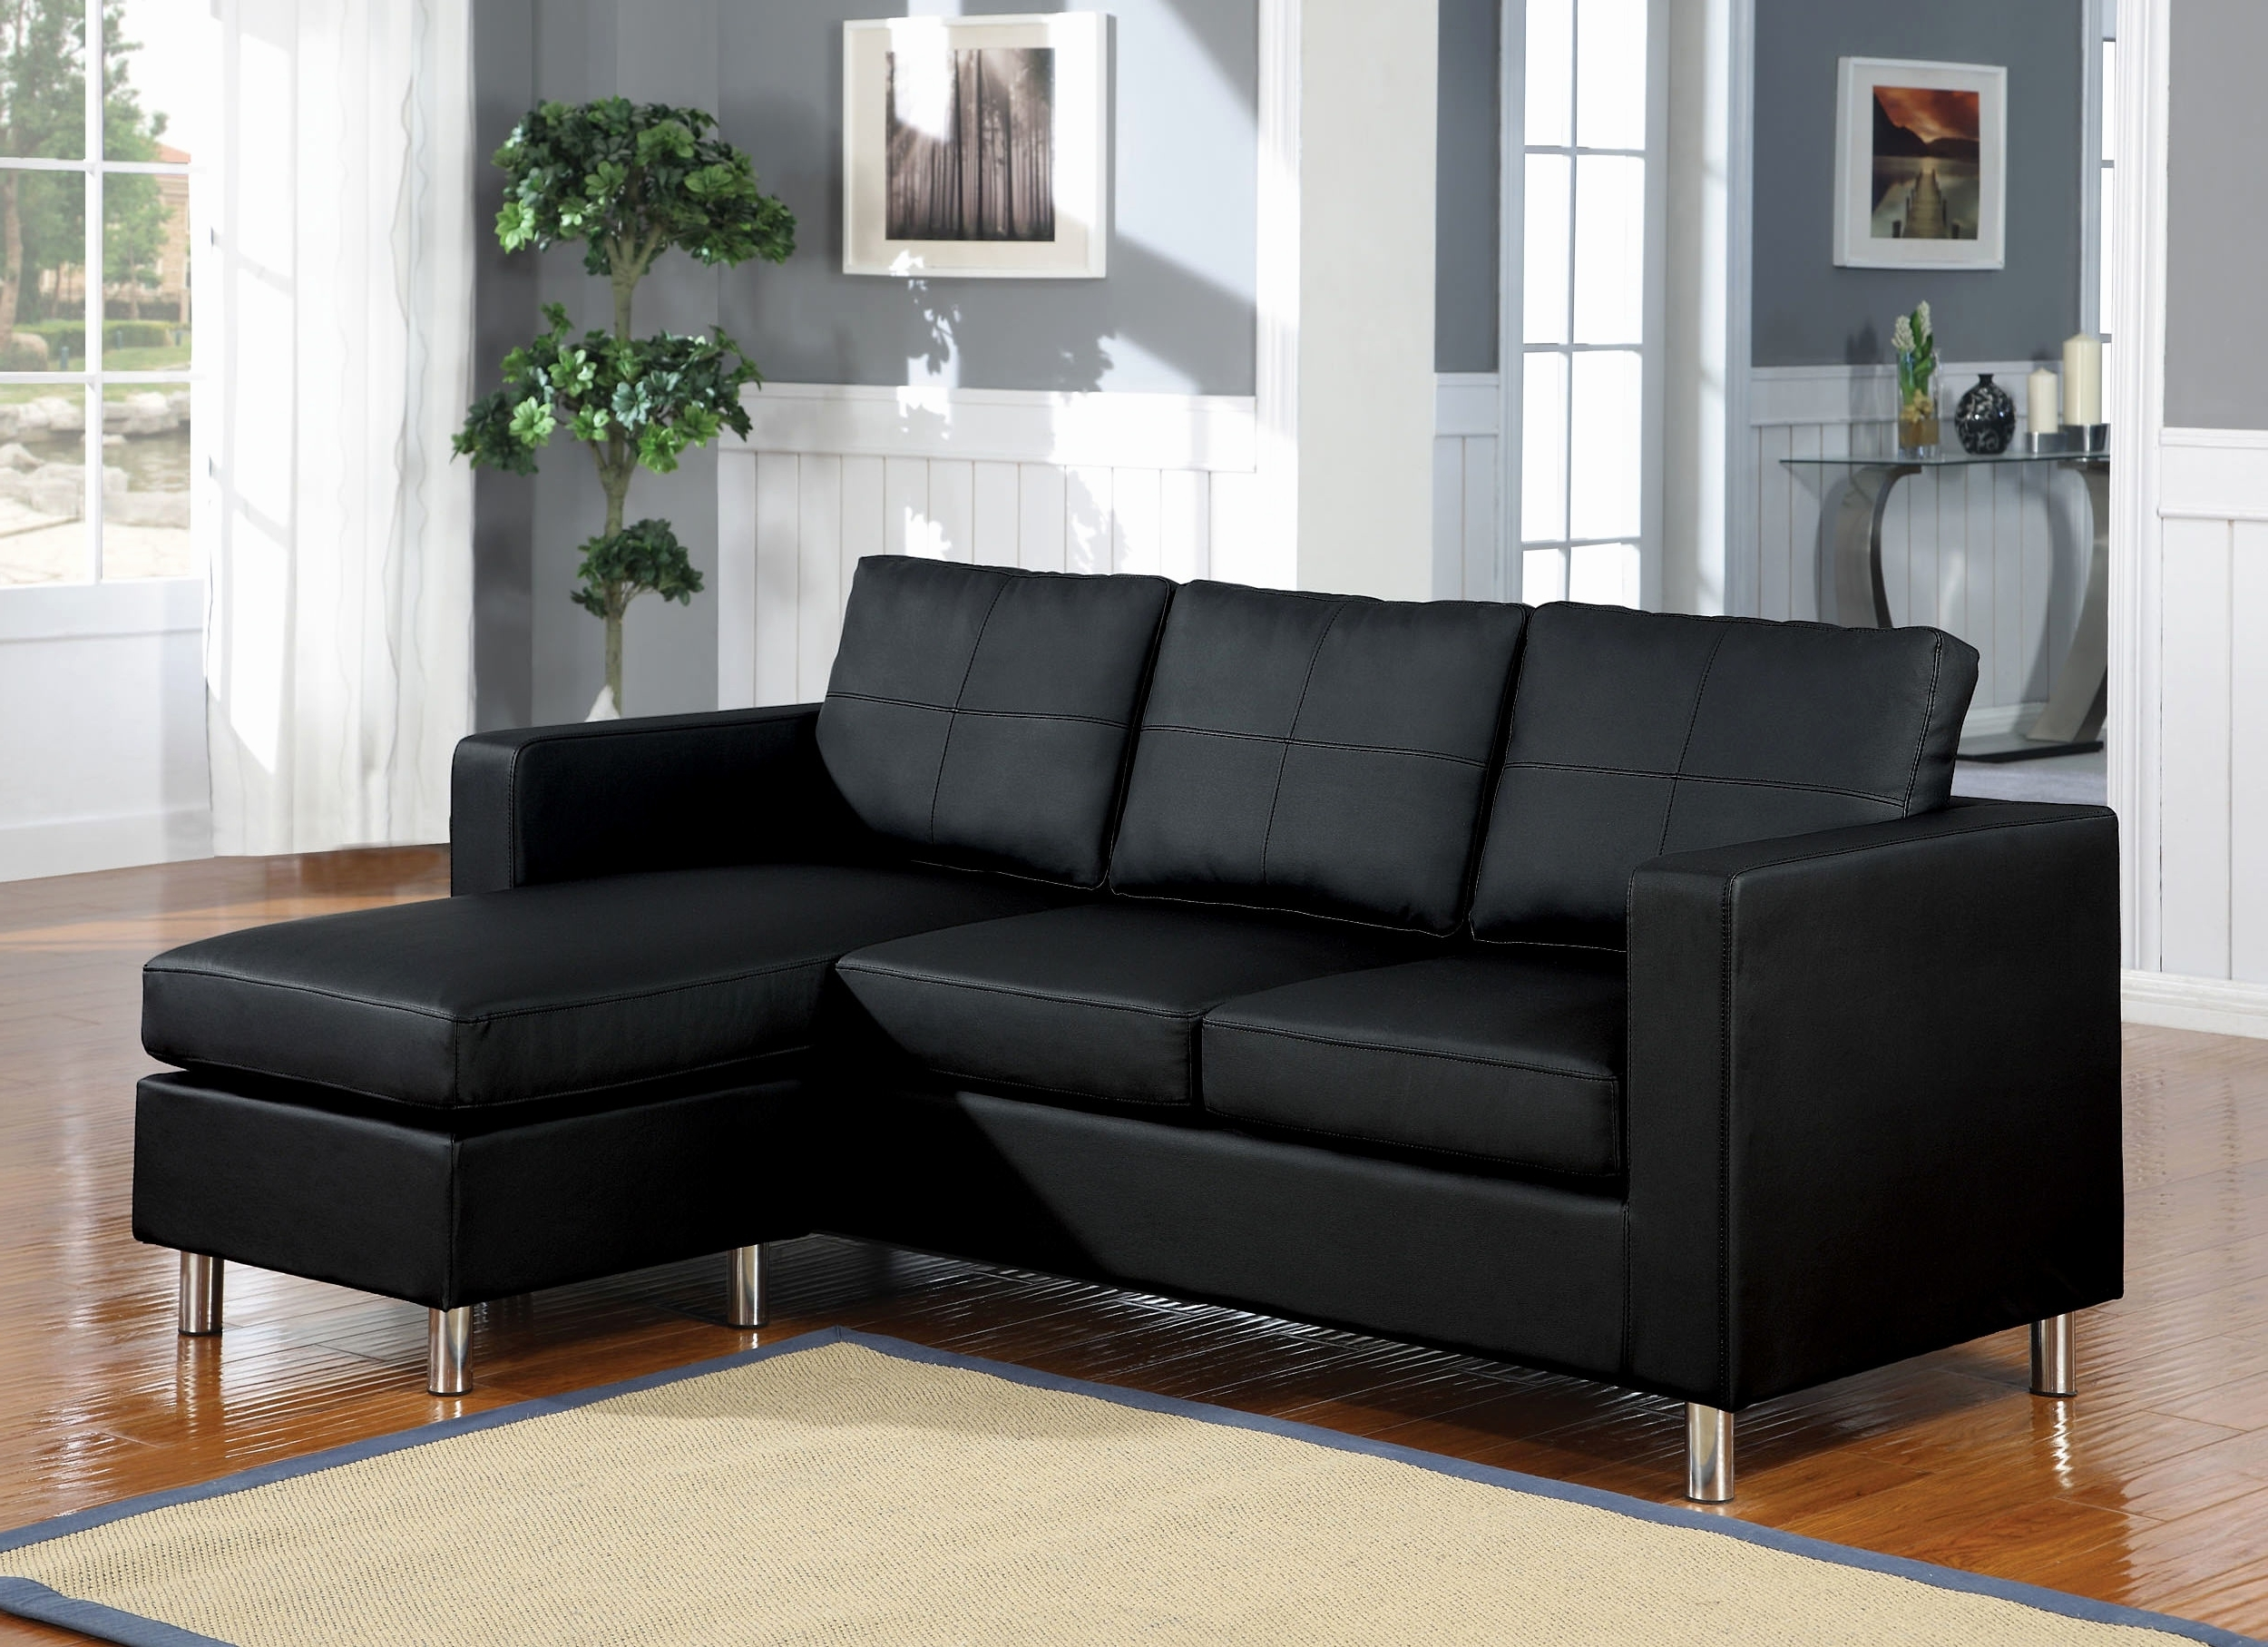 2018 Tiny Sofas With Regard To Small Space Sectional Sofa Elegant Sectional Sofa Design Awesome (View 8 of 20)